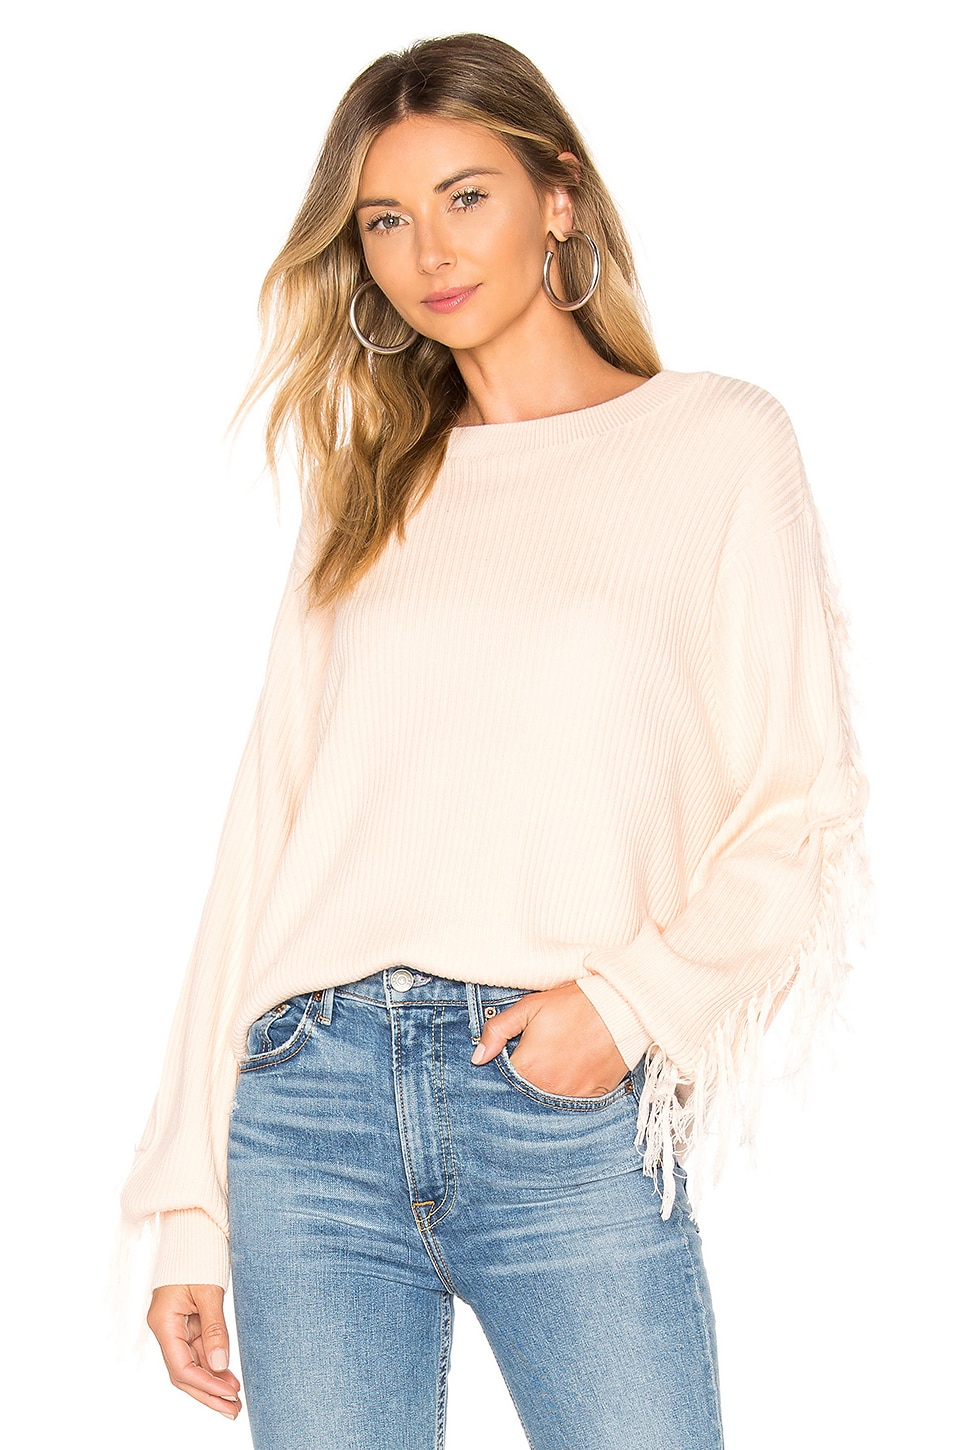 Tularosa Sparrow Sweater in Cream